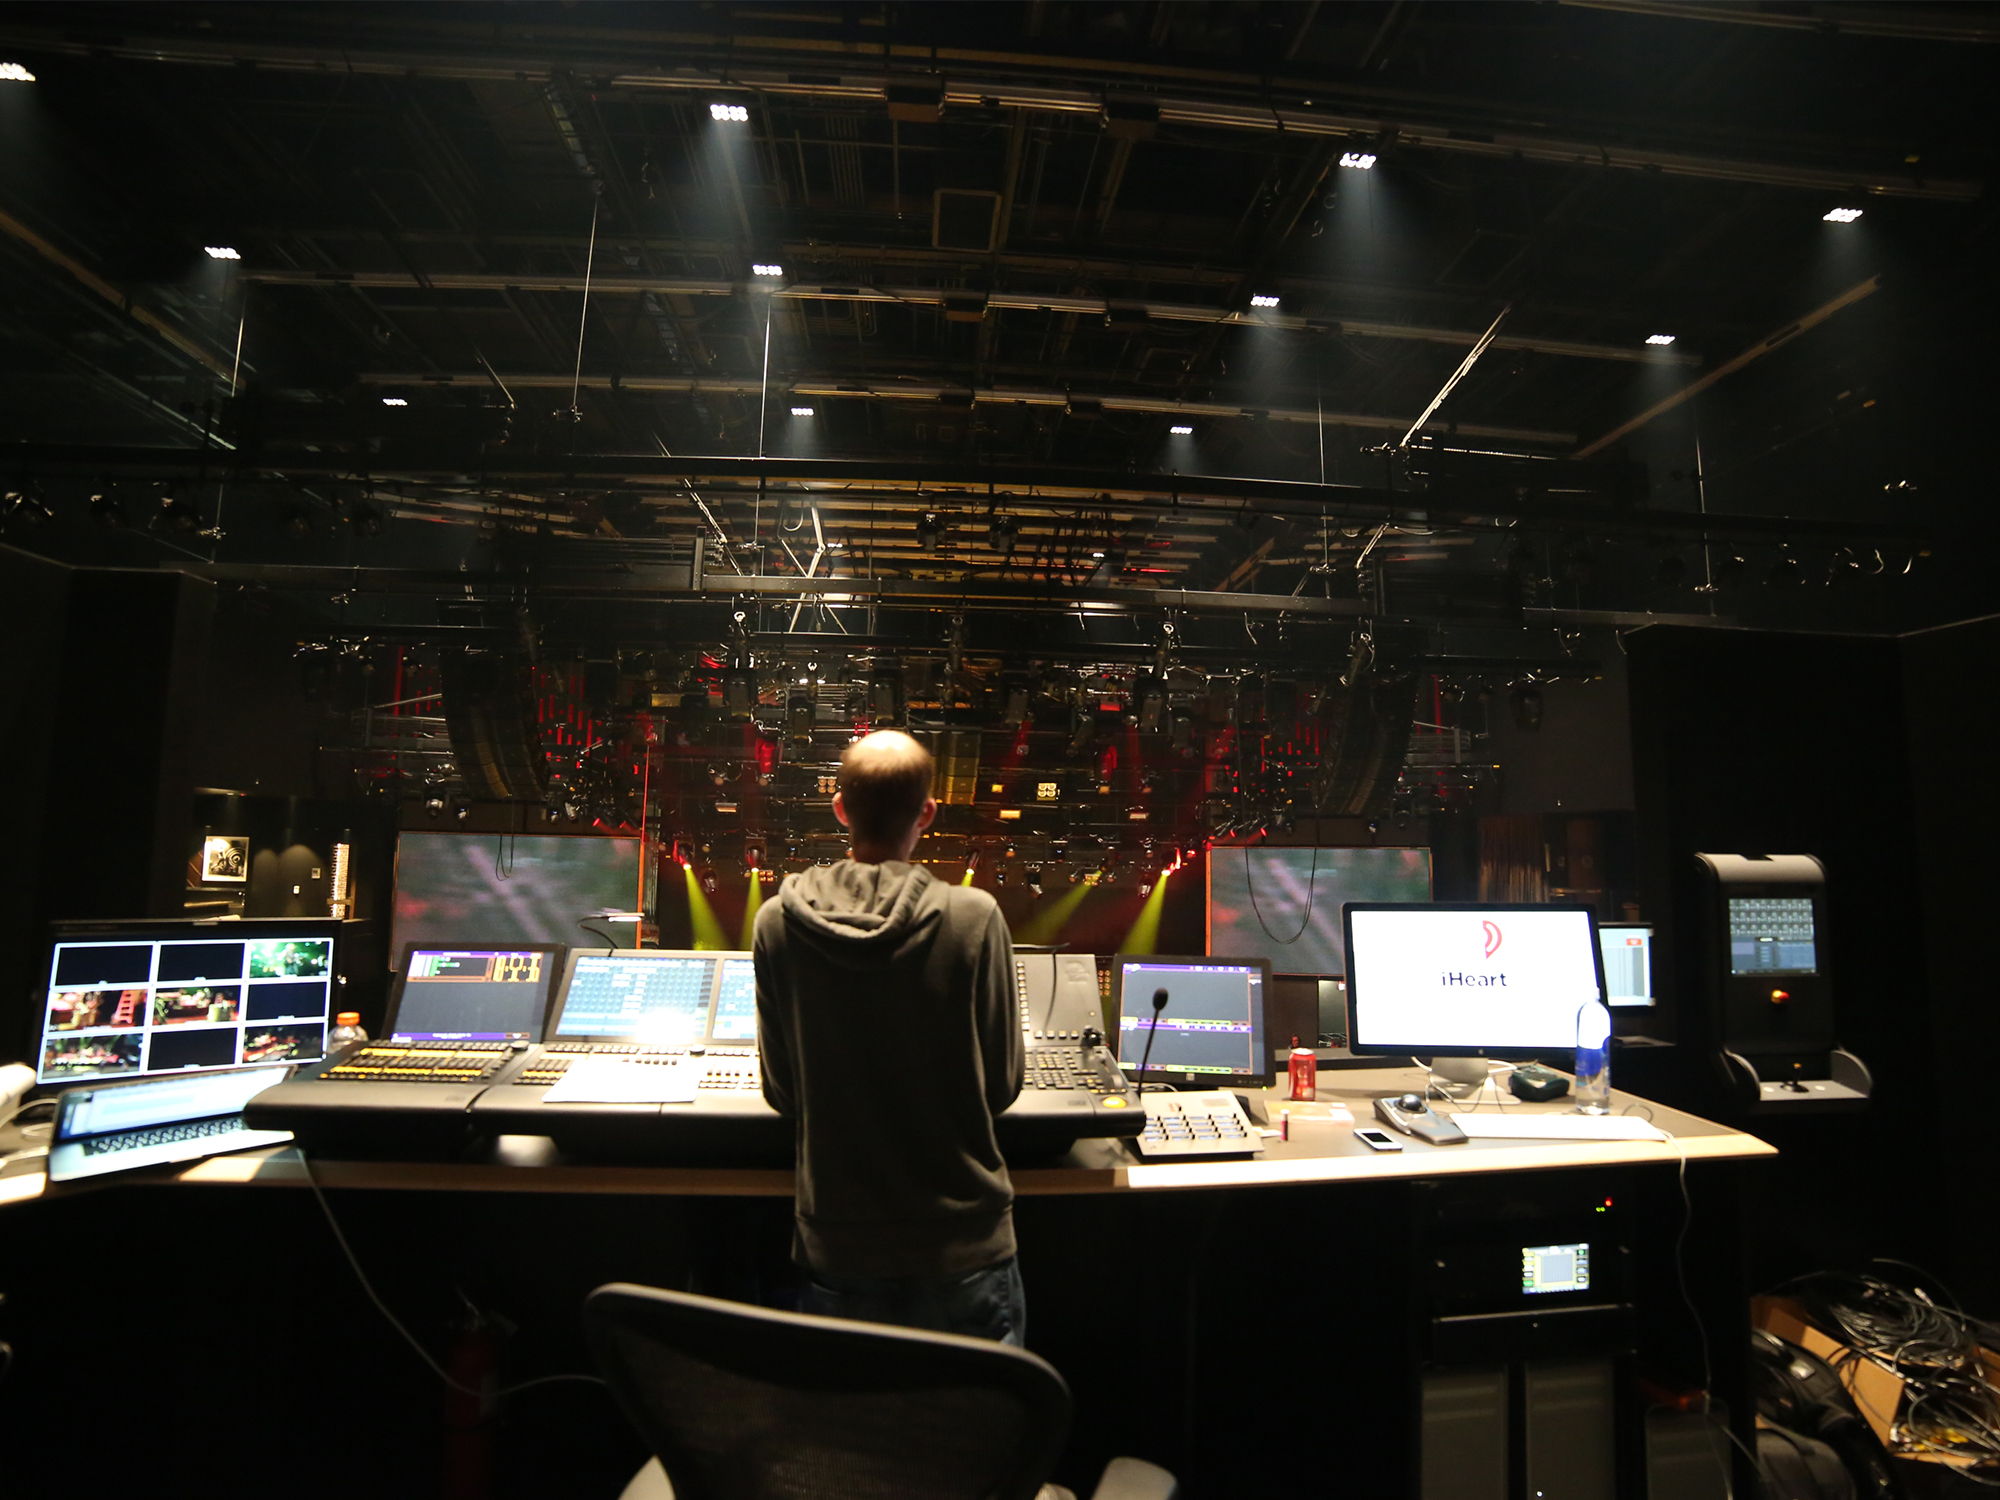 Clear Channel tapped AbelCine to create a state-of-the-art performance space in their new iHeartRadio Theater in Los Angeles.